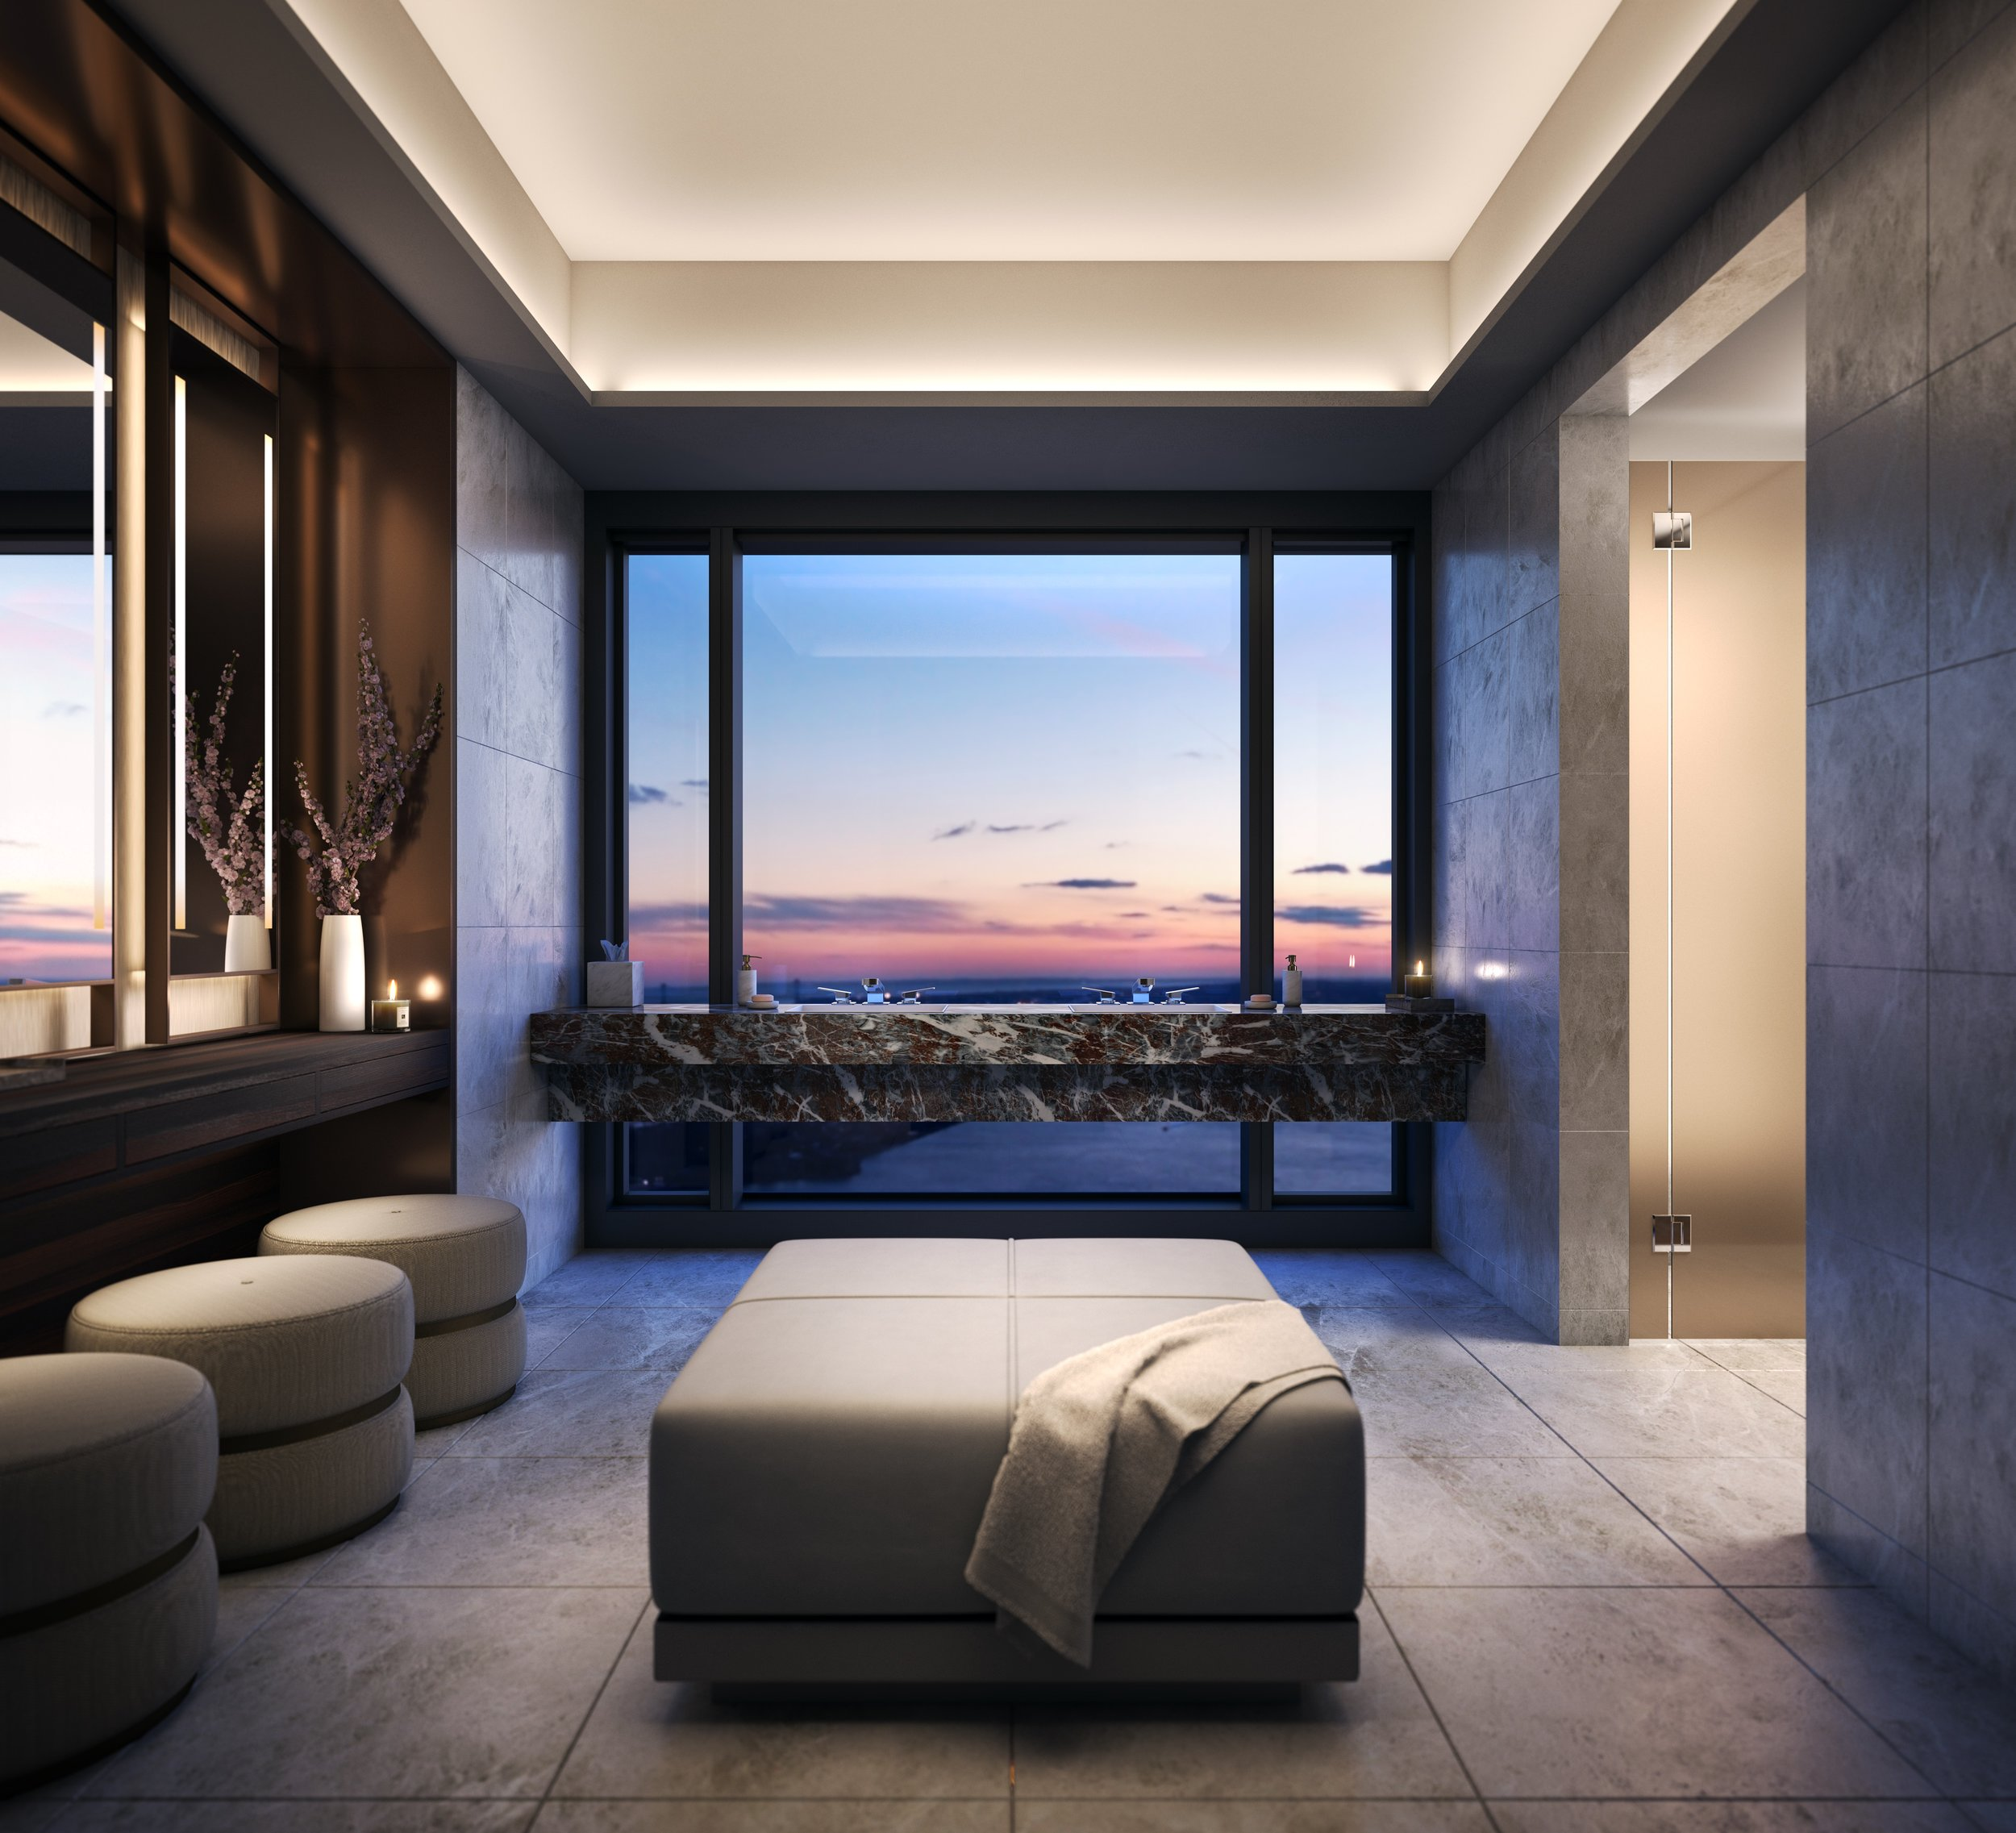 Explore The Newly Revealed Amenities At The Rafael Viñoly-Designed 125 Greenwich Street